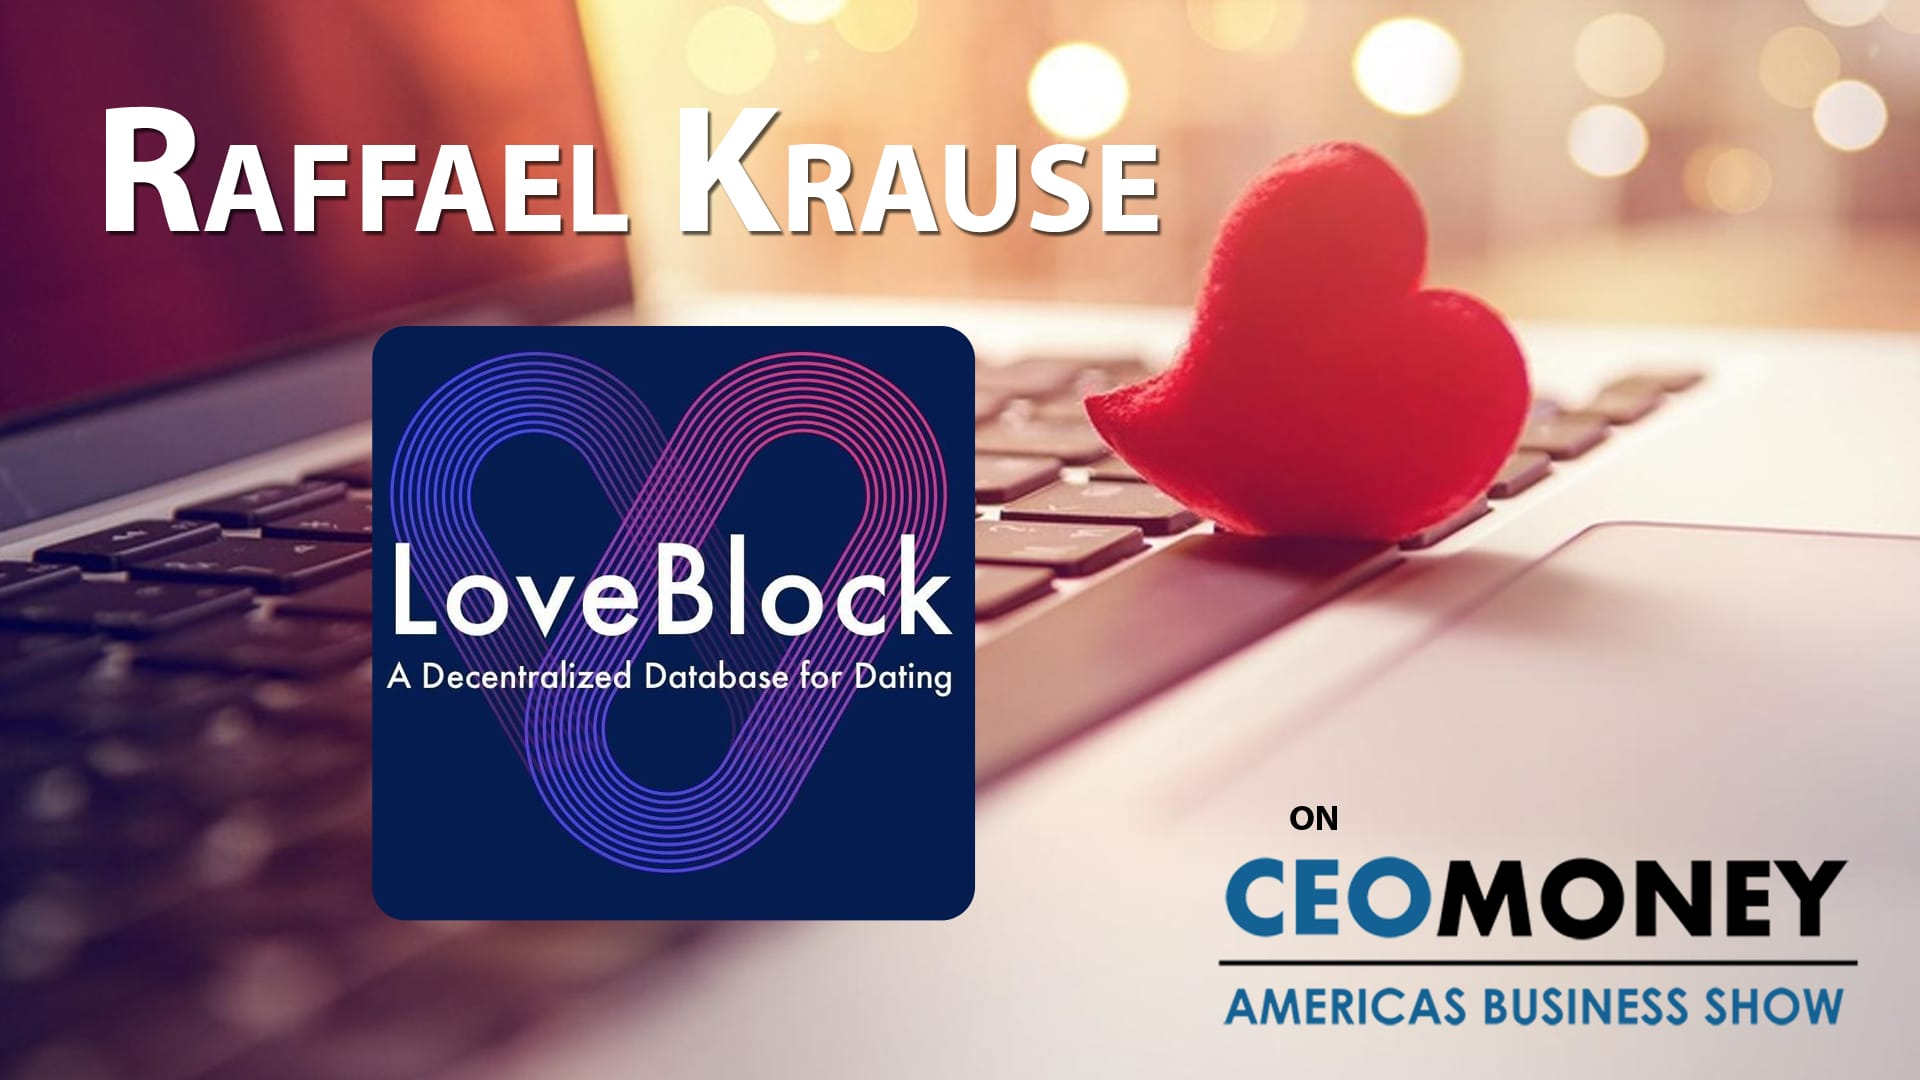 Loveblock CEO Raffael Krause is using blockchain to completely change security and transparency in online dating